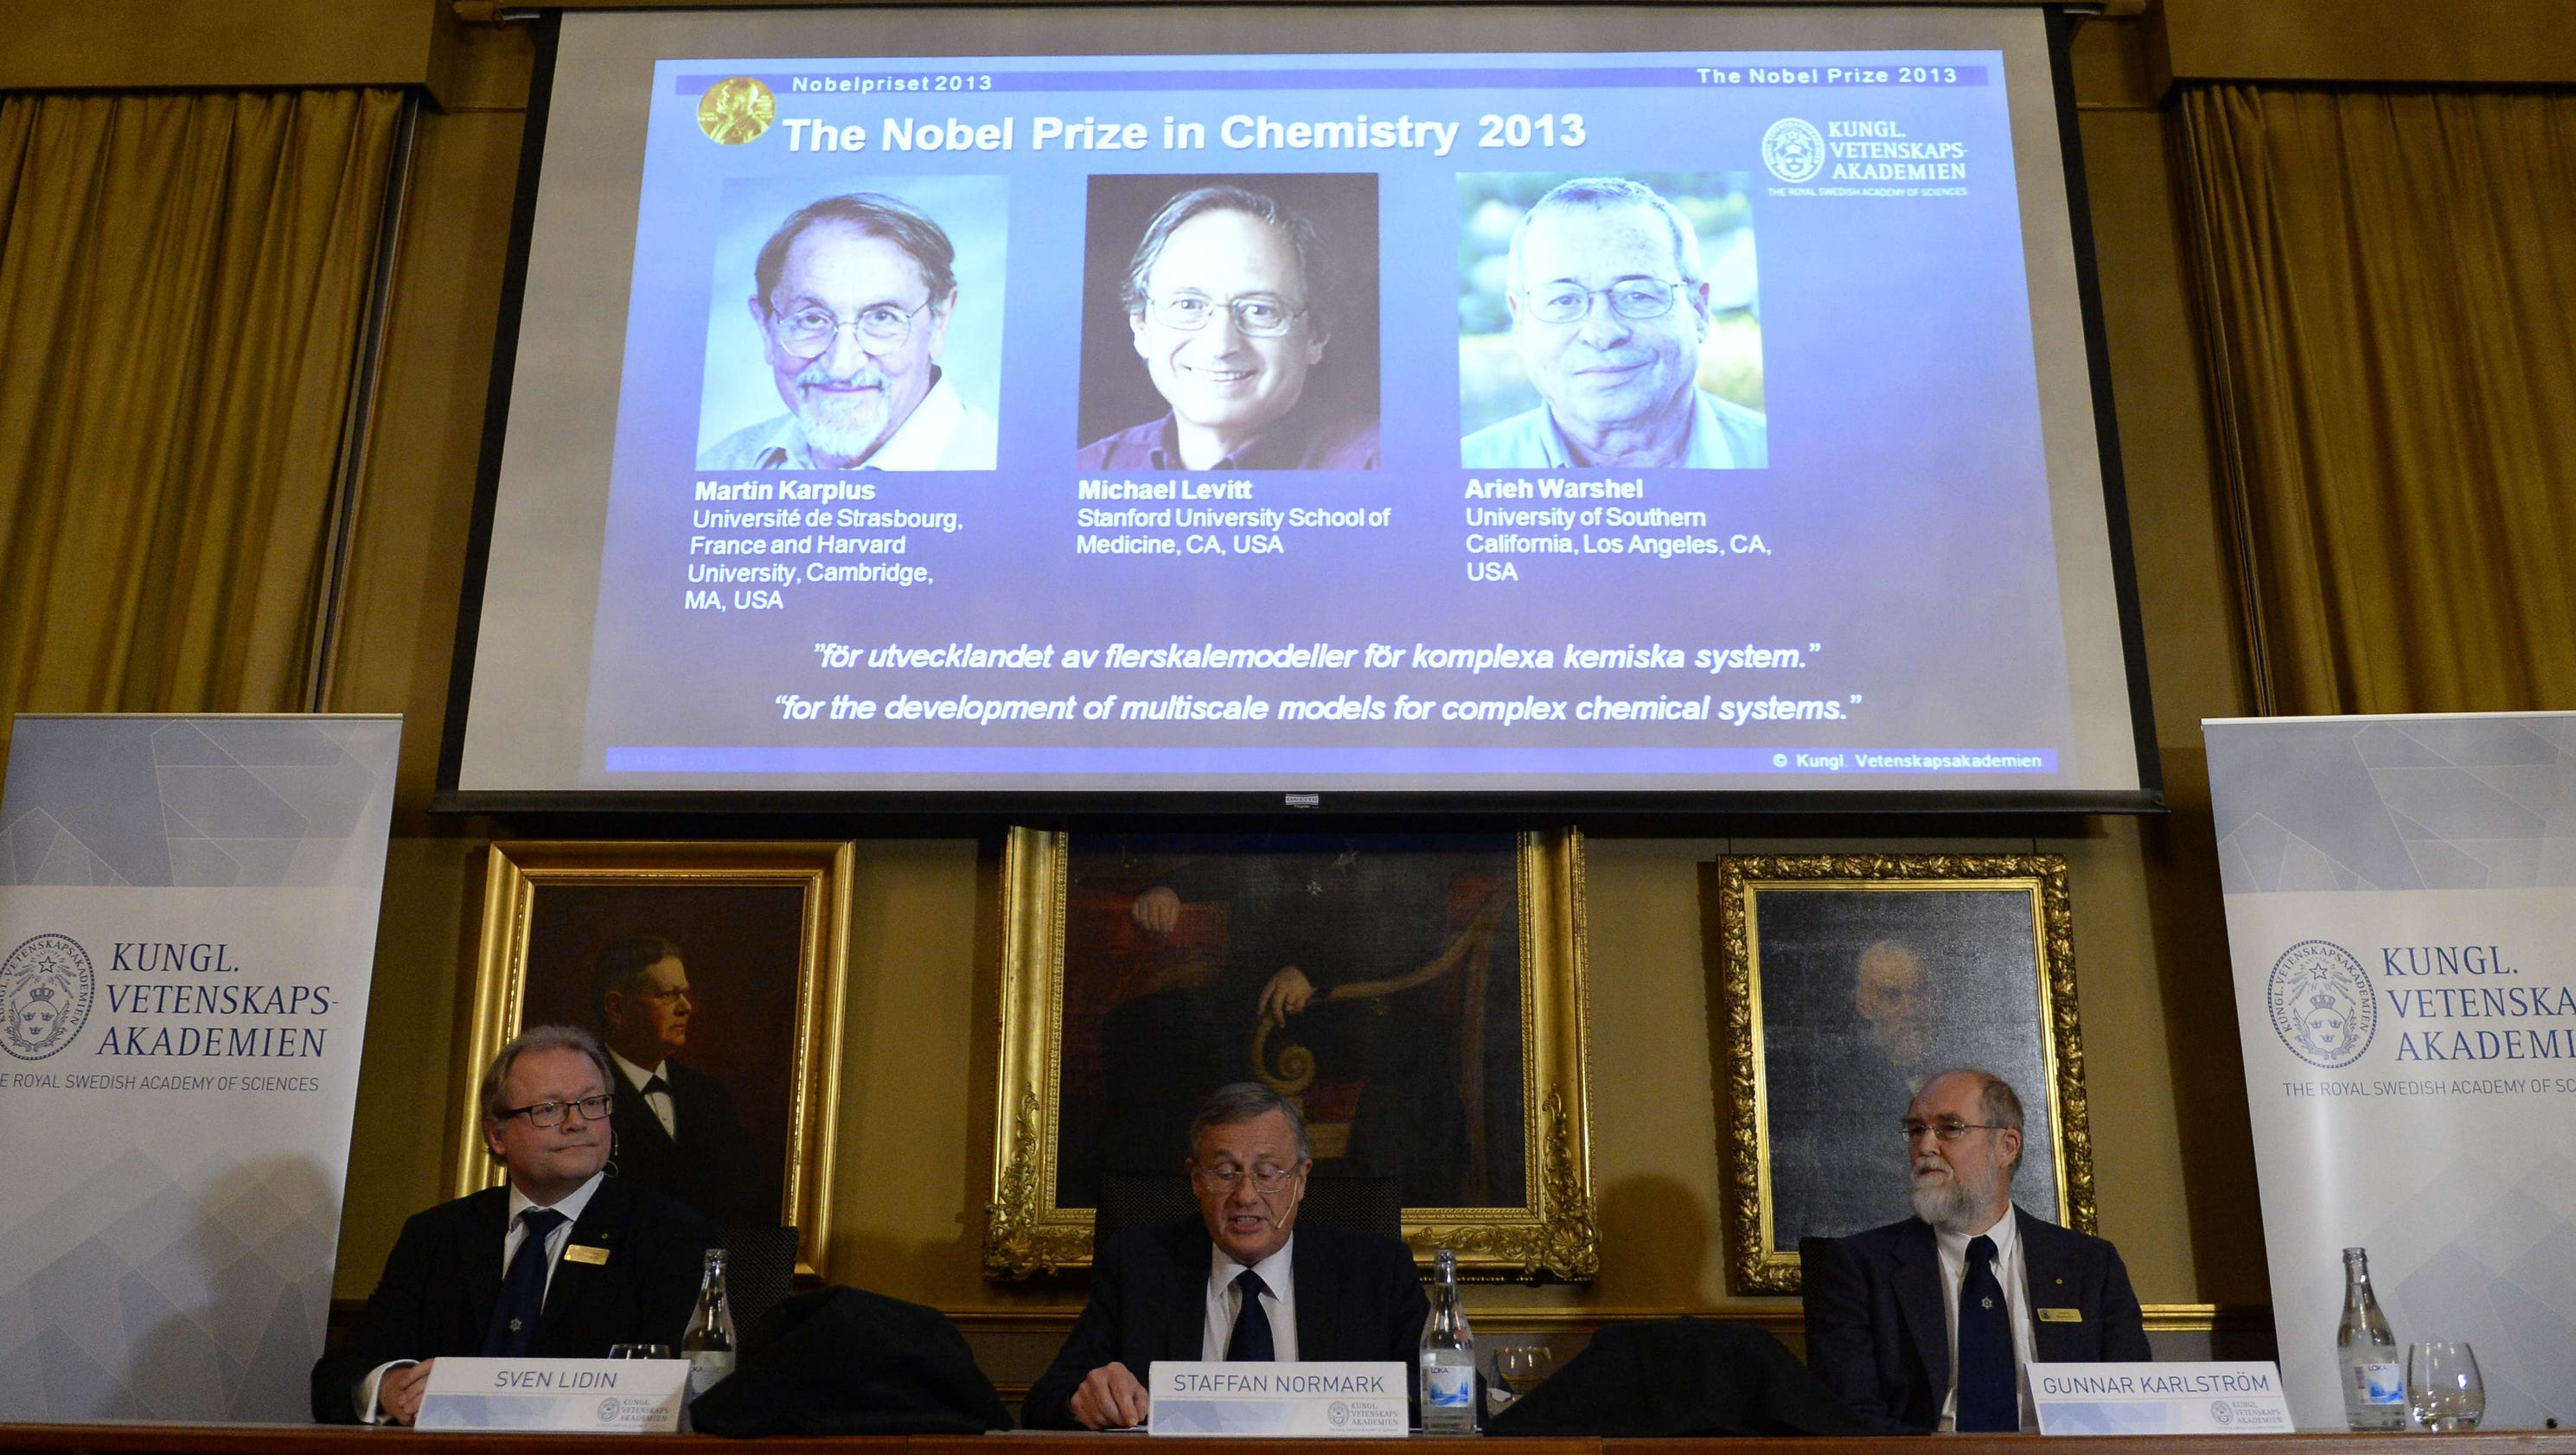 the chemistry nobel prize 2013 essay The nobel prize in chemistry rewards 3 scientists for work leading to complex computer programs used today to display detailed structures of complex molecules.